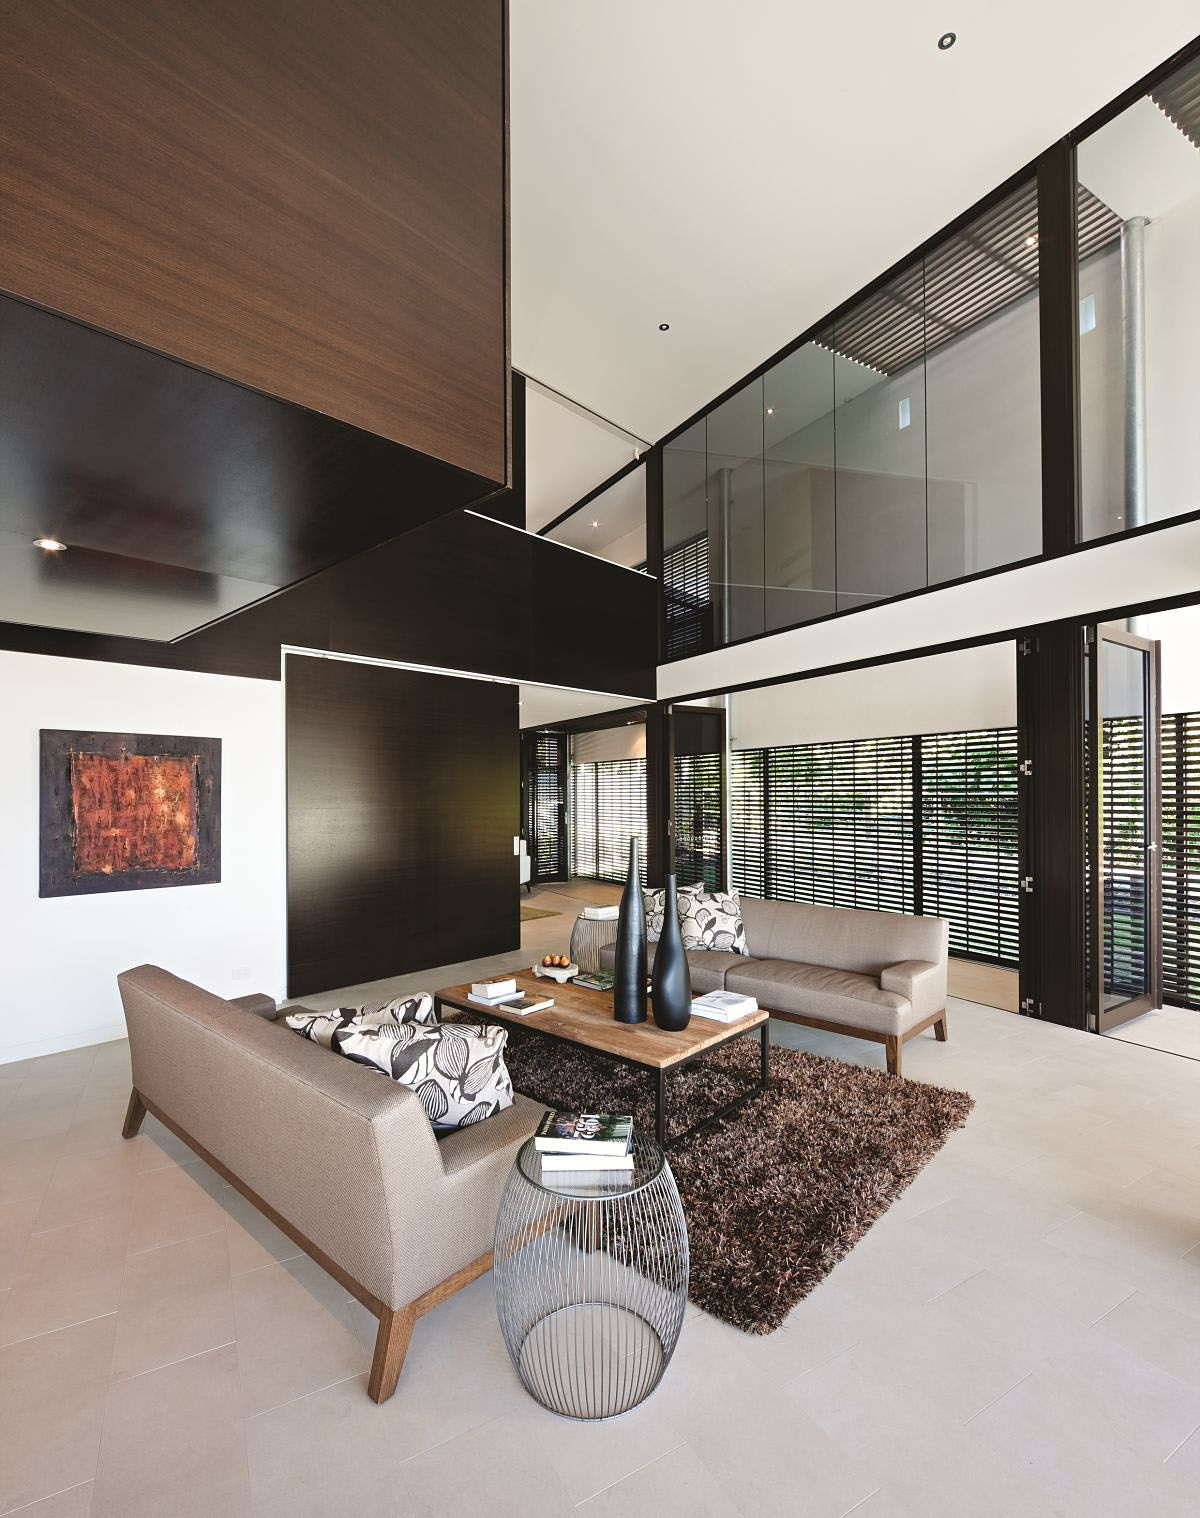 Elysium 169 House by BVN Architecture | Arch/int design ...